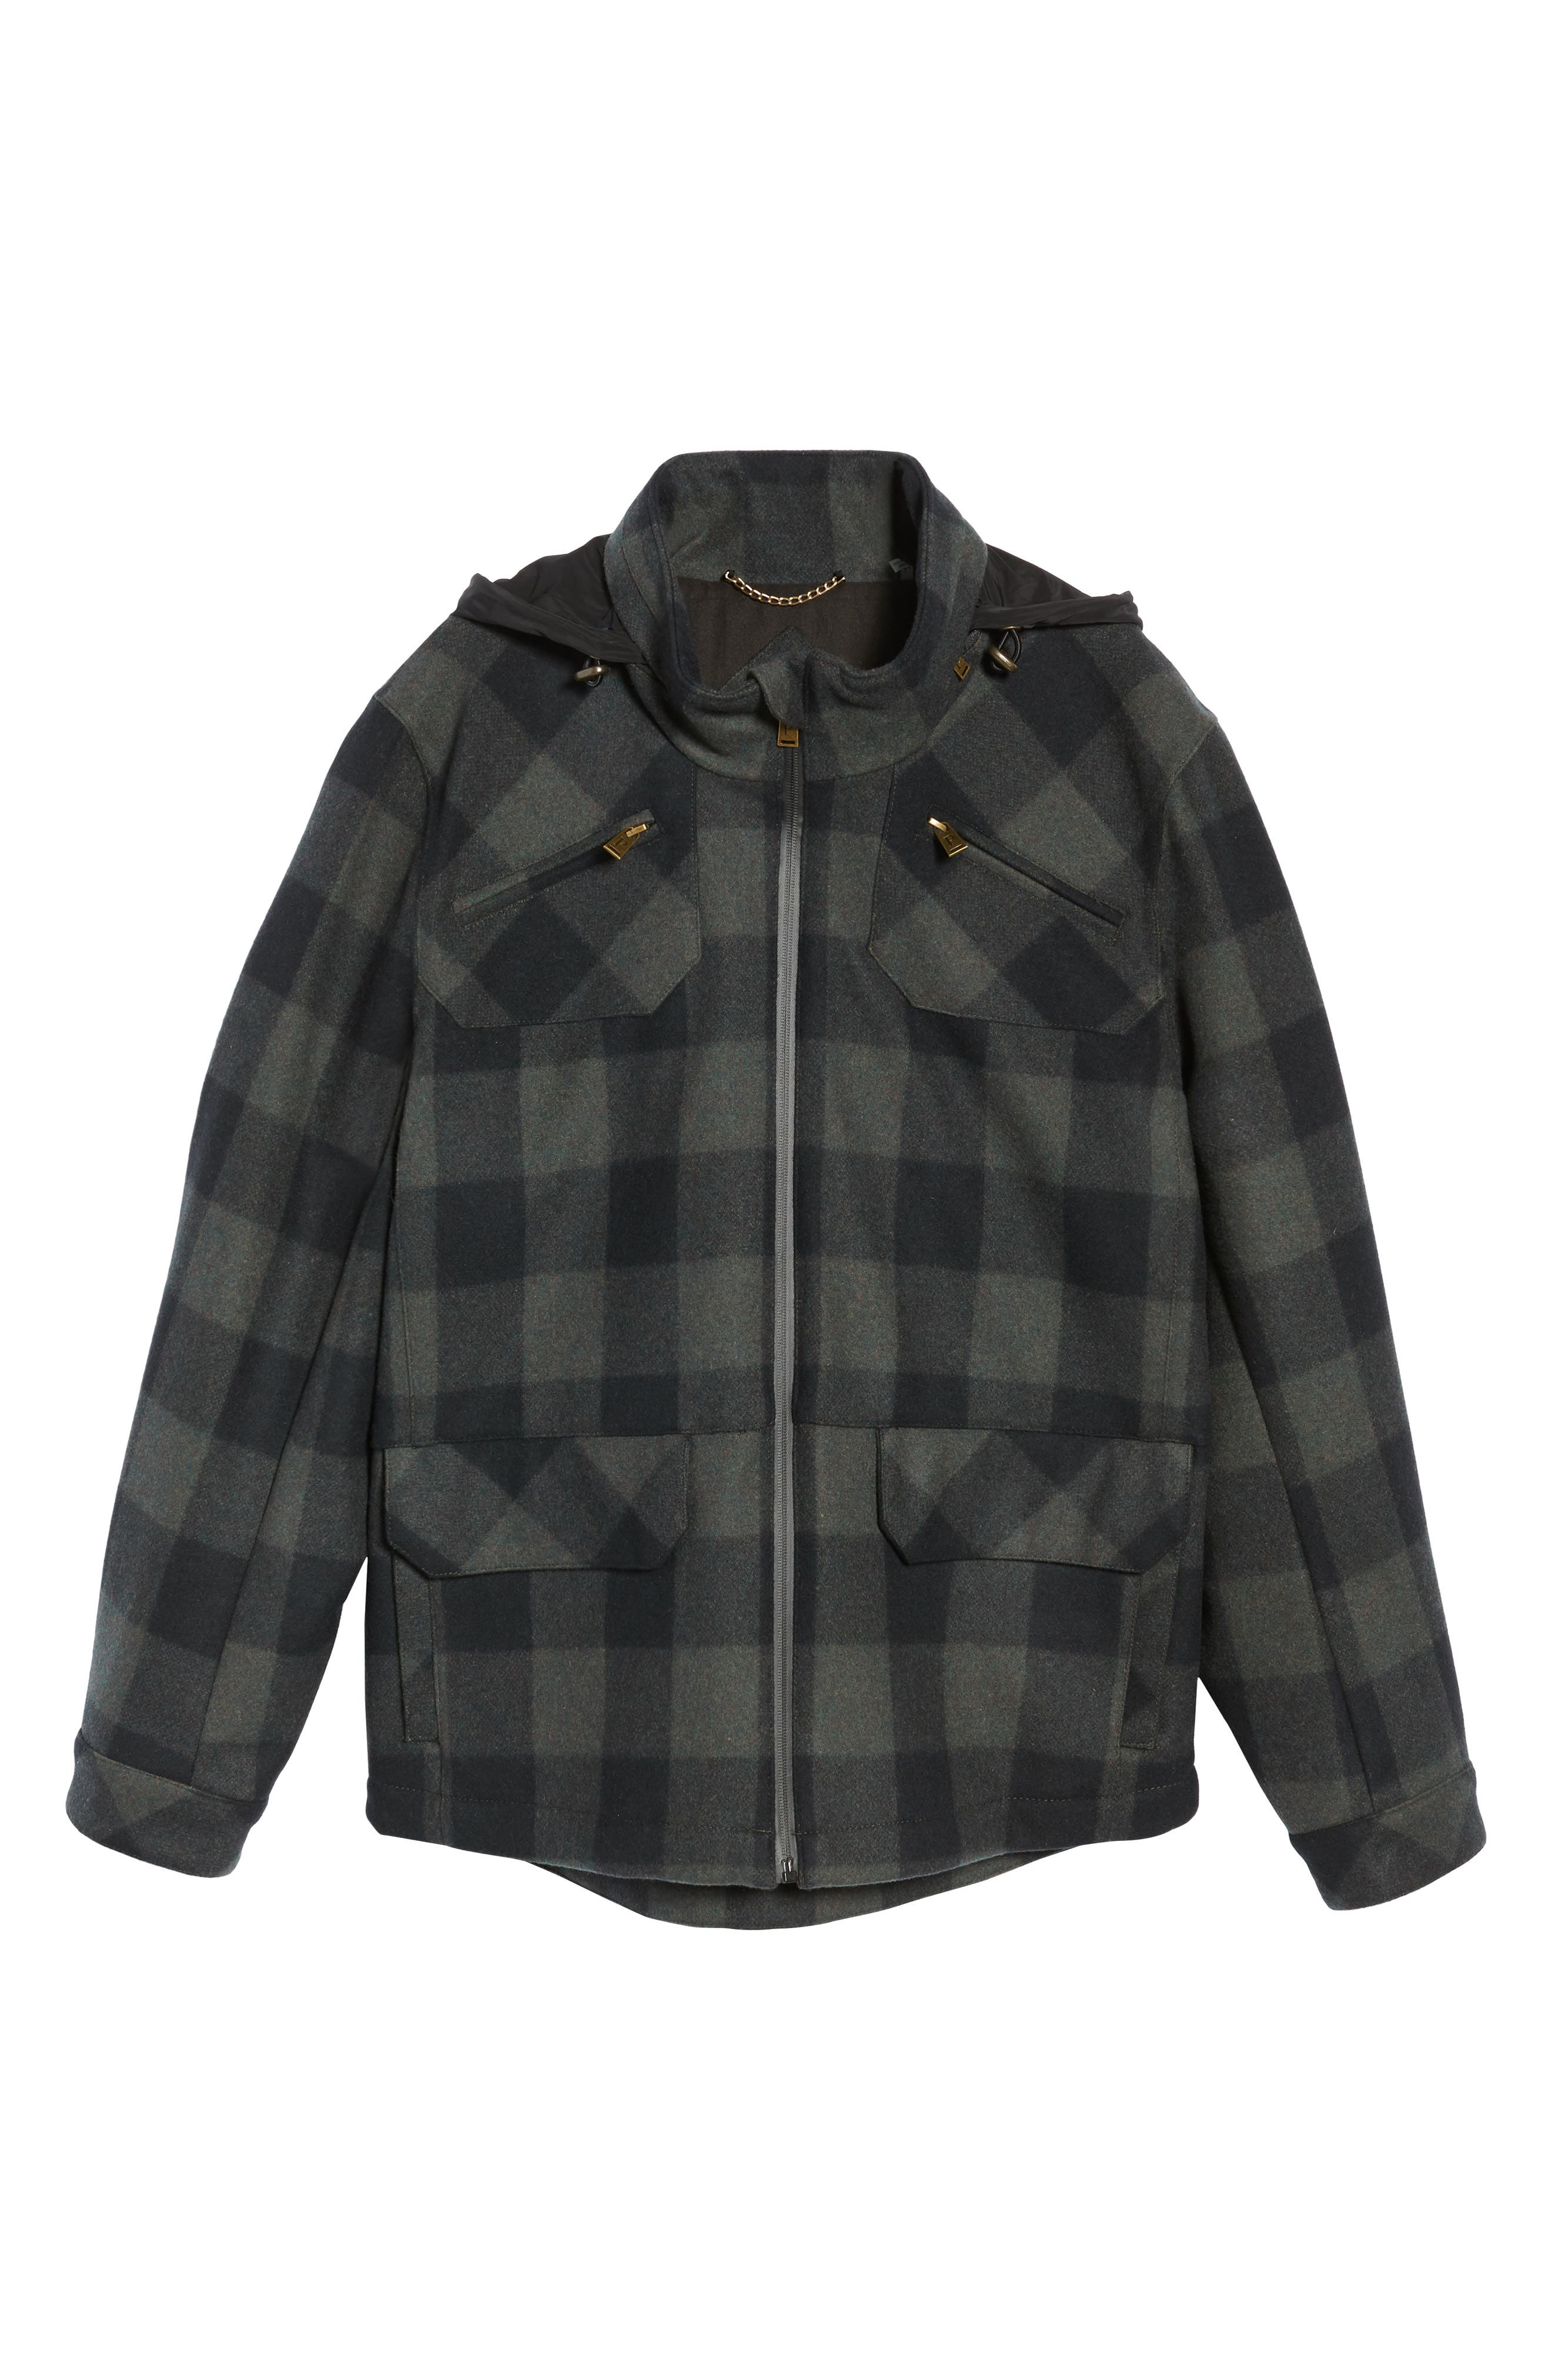 Albuquerque Jacket,                             Alternate thumbnail 6, color,                             Olive Buffalo Plaid